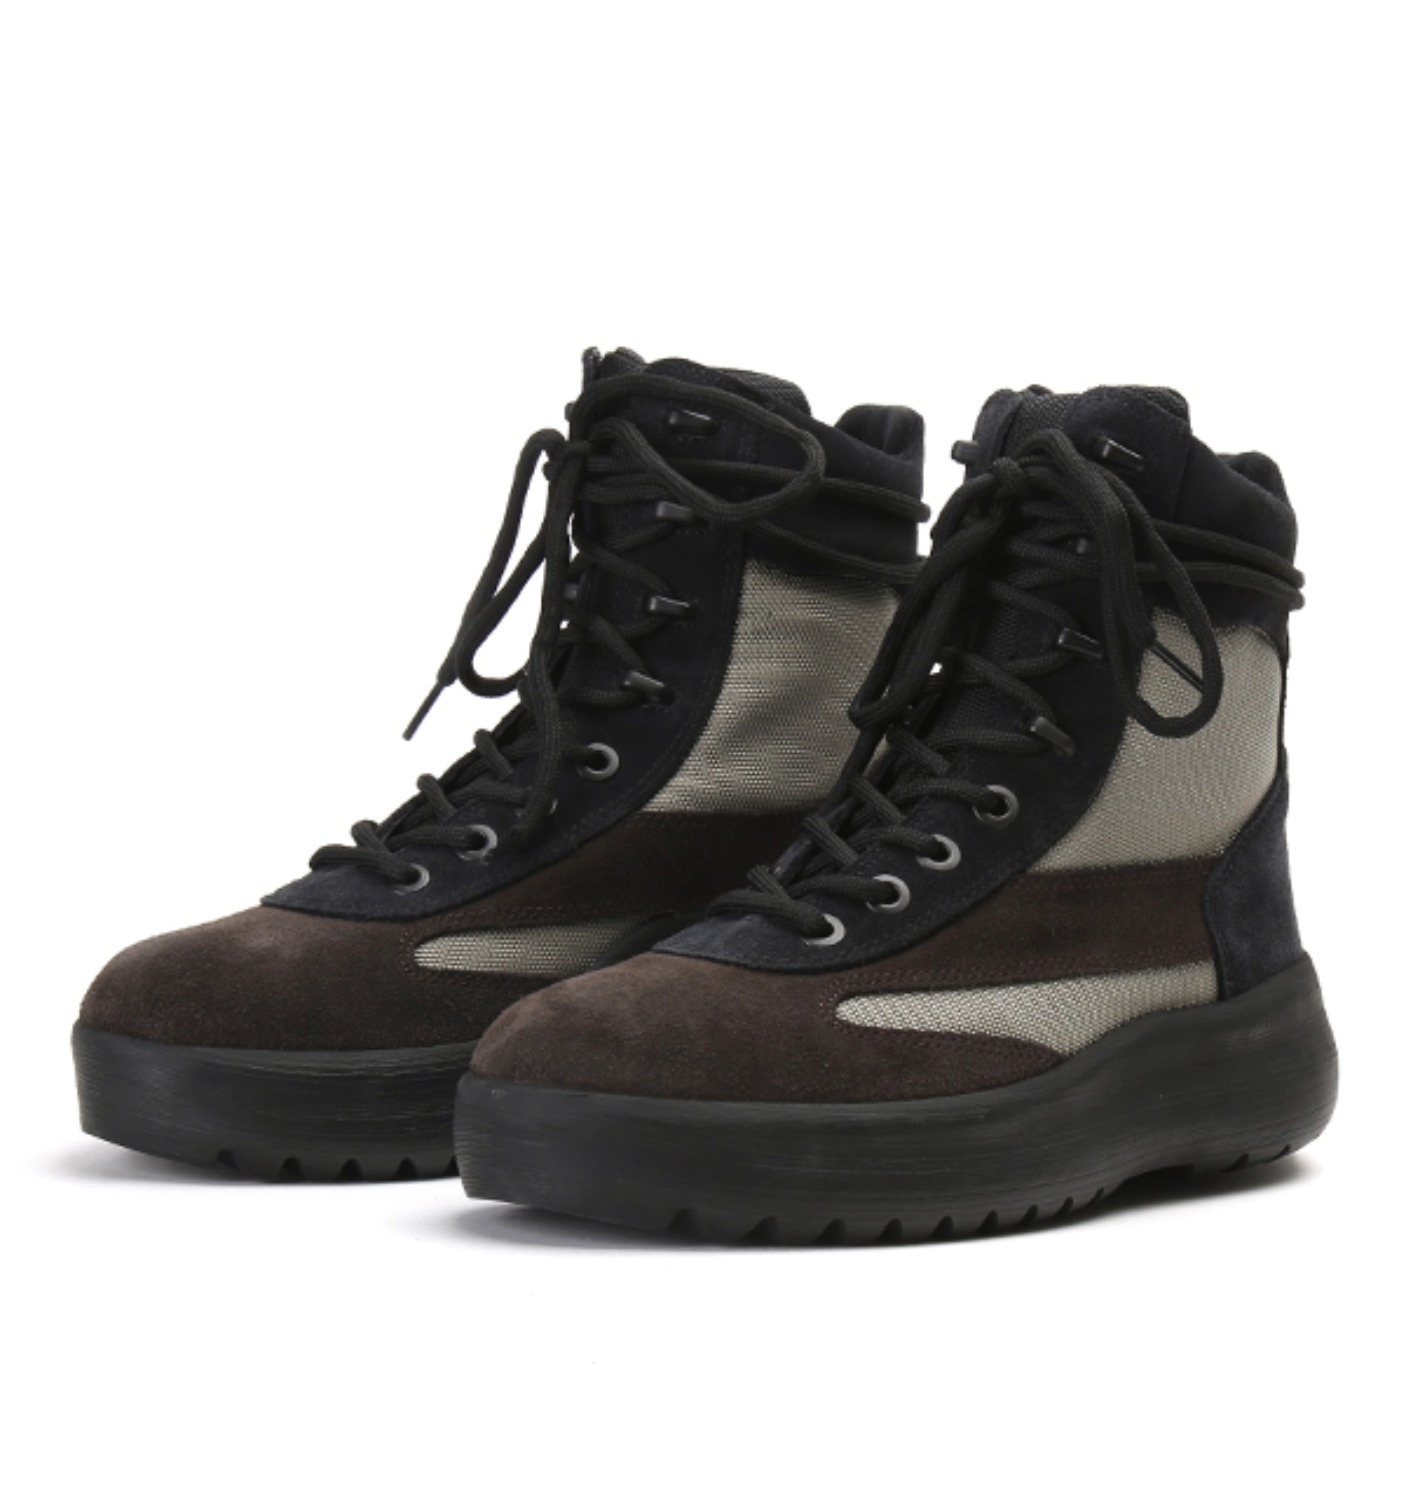 MILITARY BOOT THICK SUEDE&NYLON OIL/MILITARY(KM4005.131)